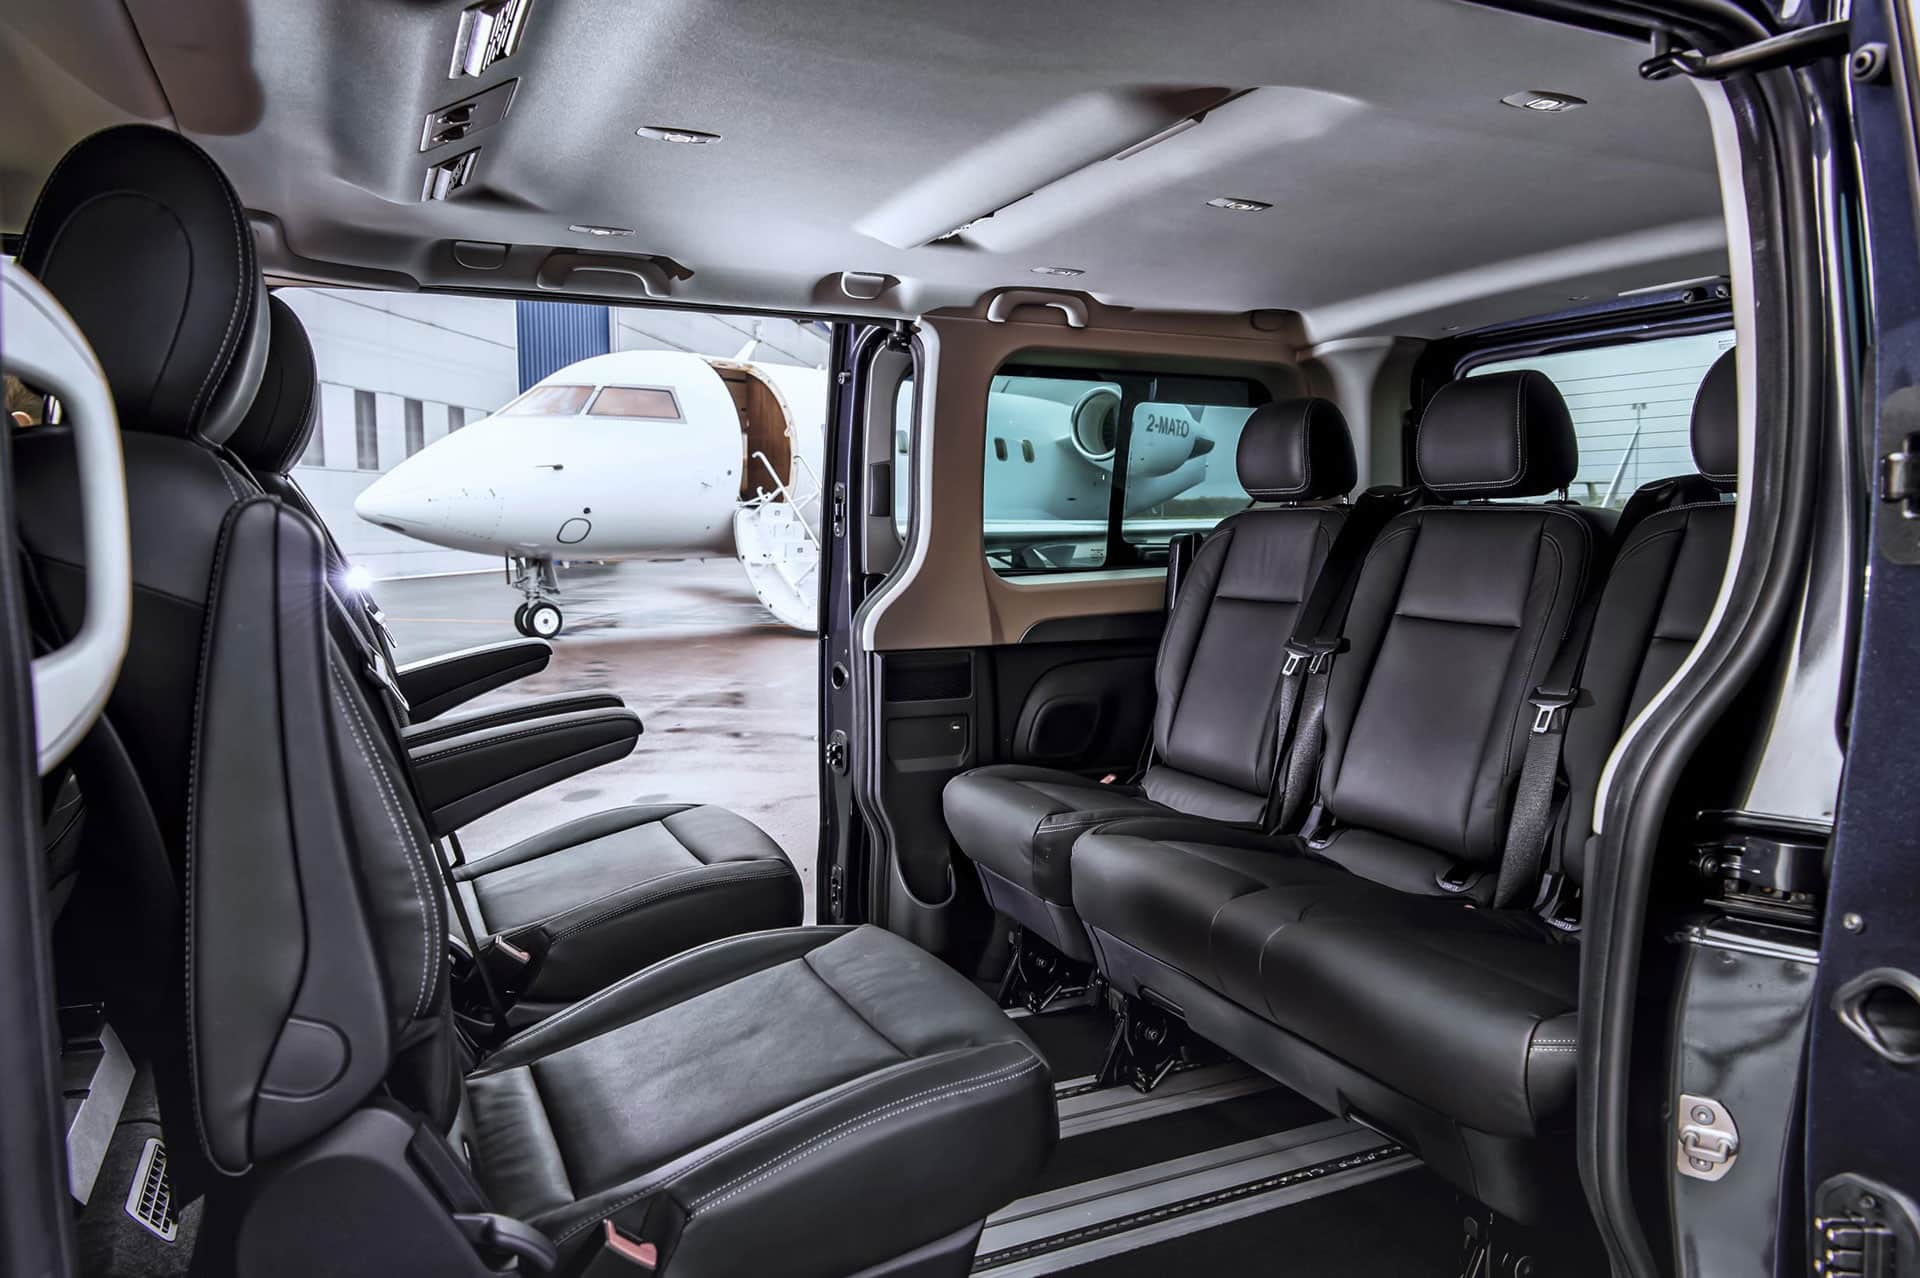 Renault Trafic Spacelass The Car Expert